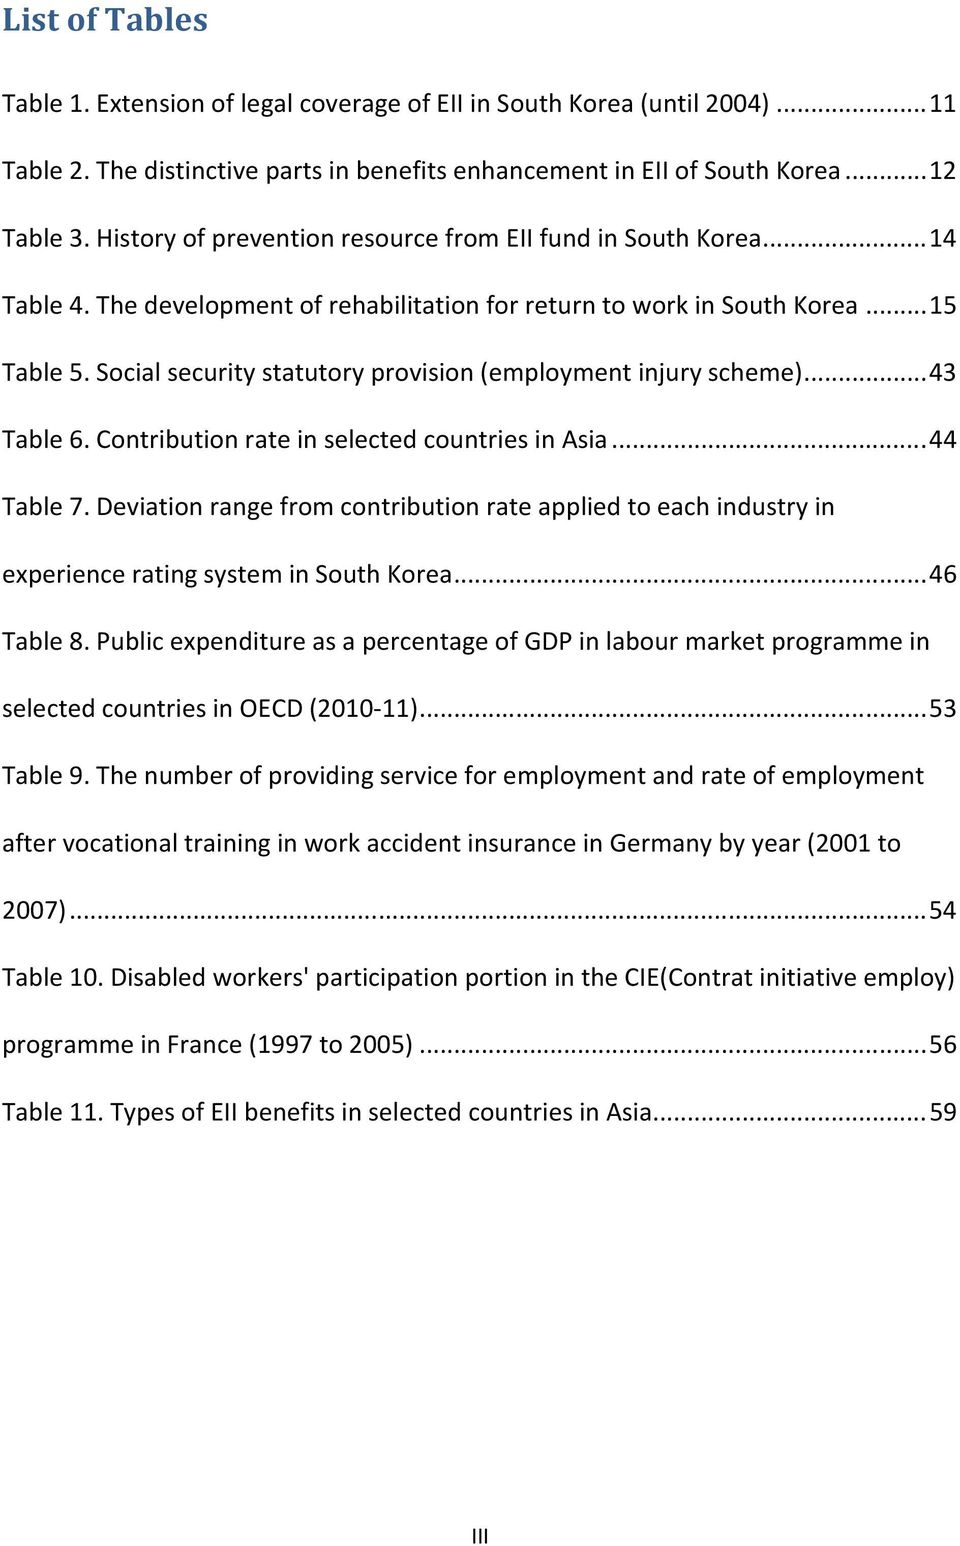 Social security statutory provision (employment injury scheme)... 43 Table 6. Contribution rate in selected countries in Asia... 44 Table 7.